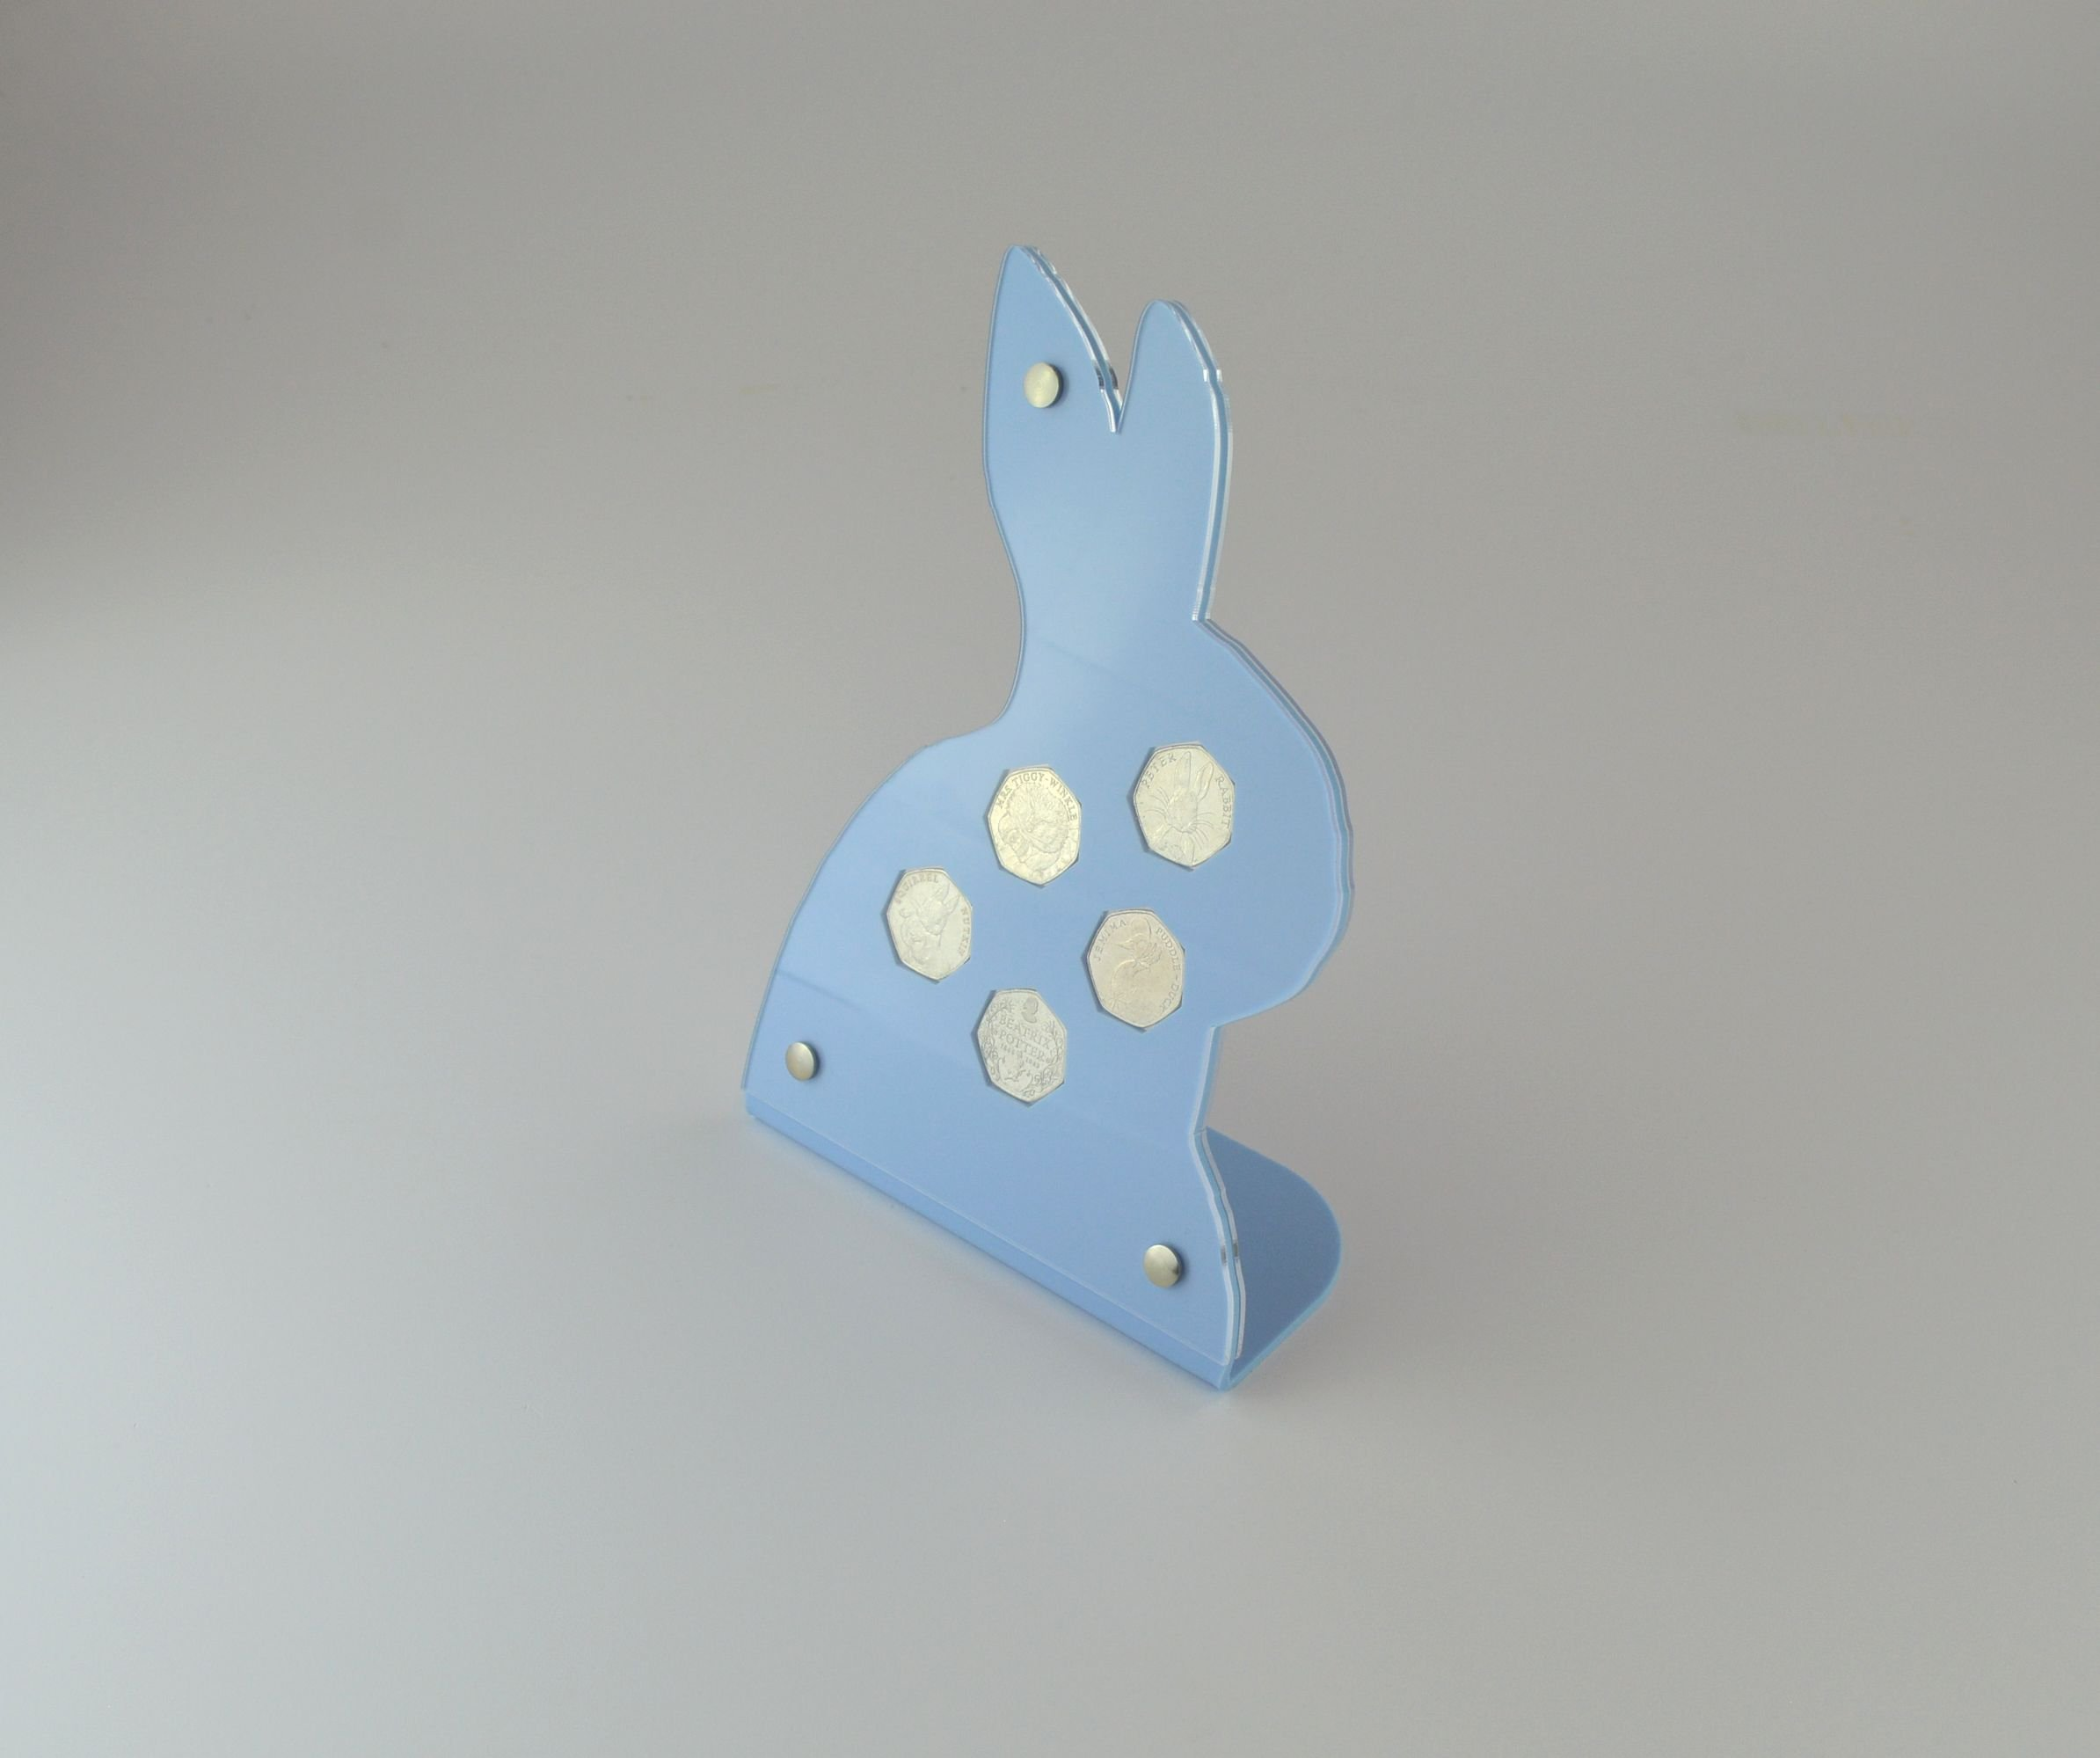 Coin Display Holder - ideal for Beatrix Potter 50p coin set - Rabbit shaped Blue Acrylic